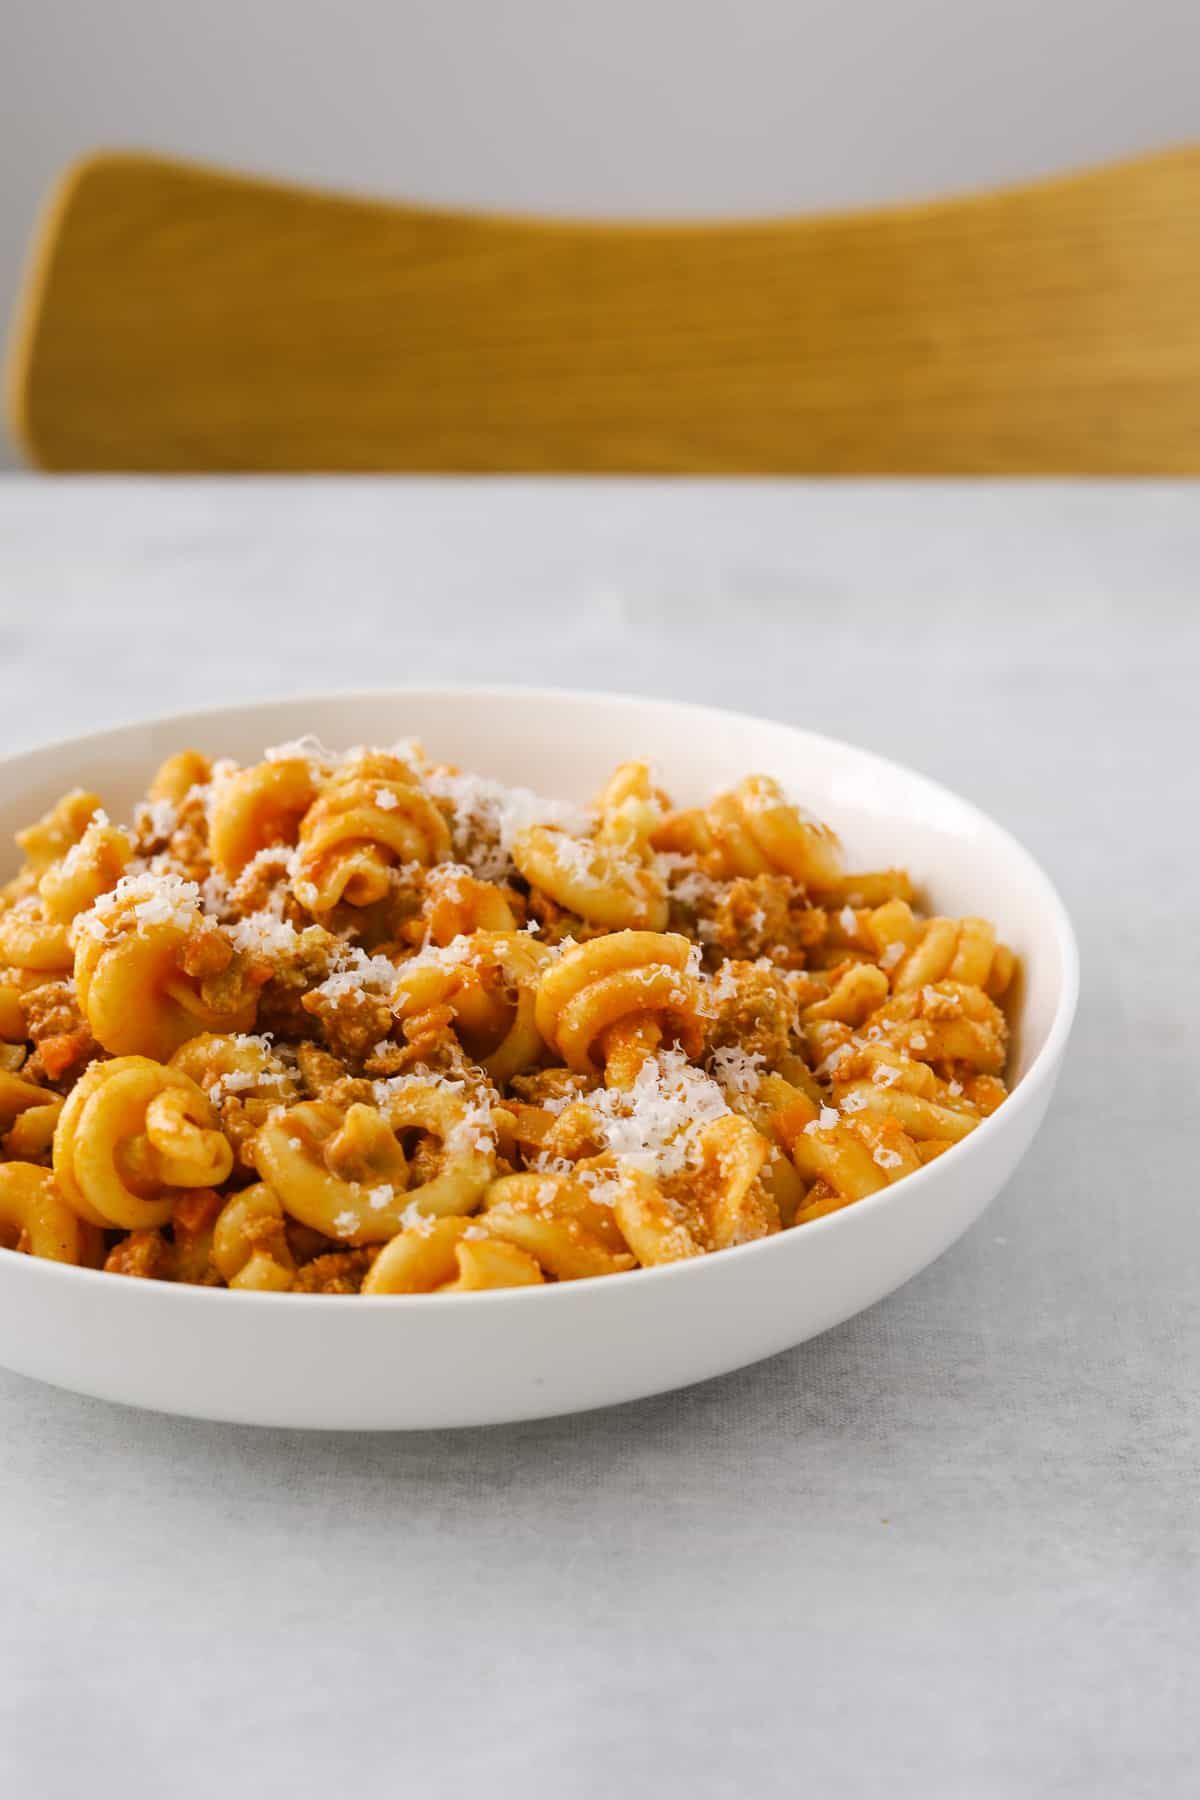 a white bowl filled with turkey bolognese pasta, topped with grated parmesan cheese, background is blue